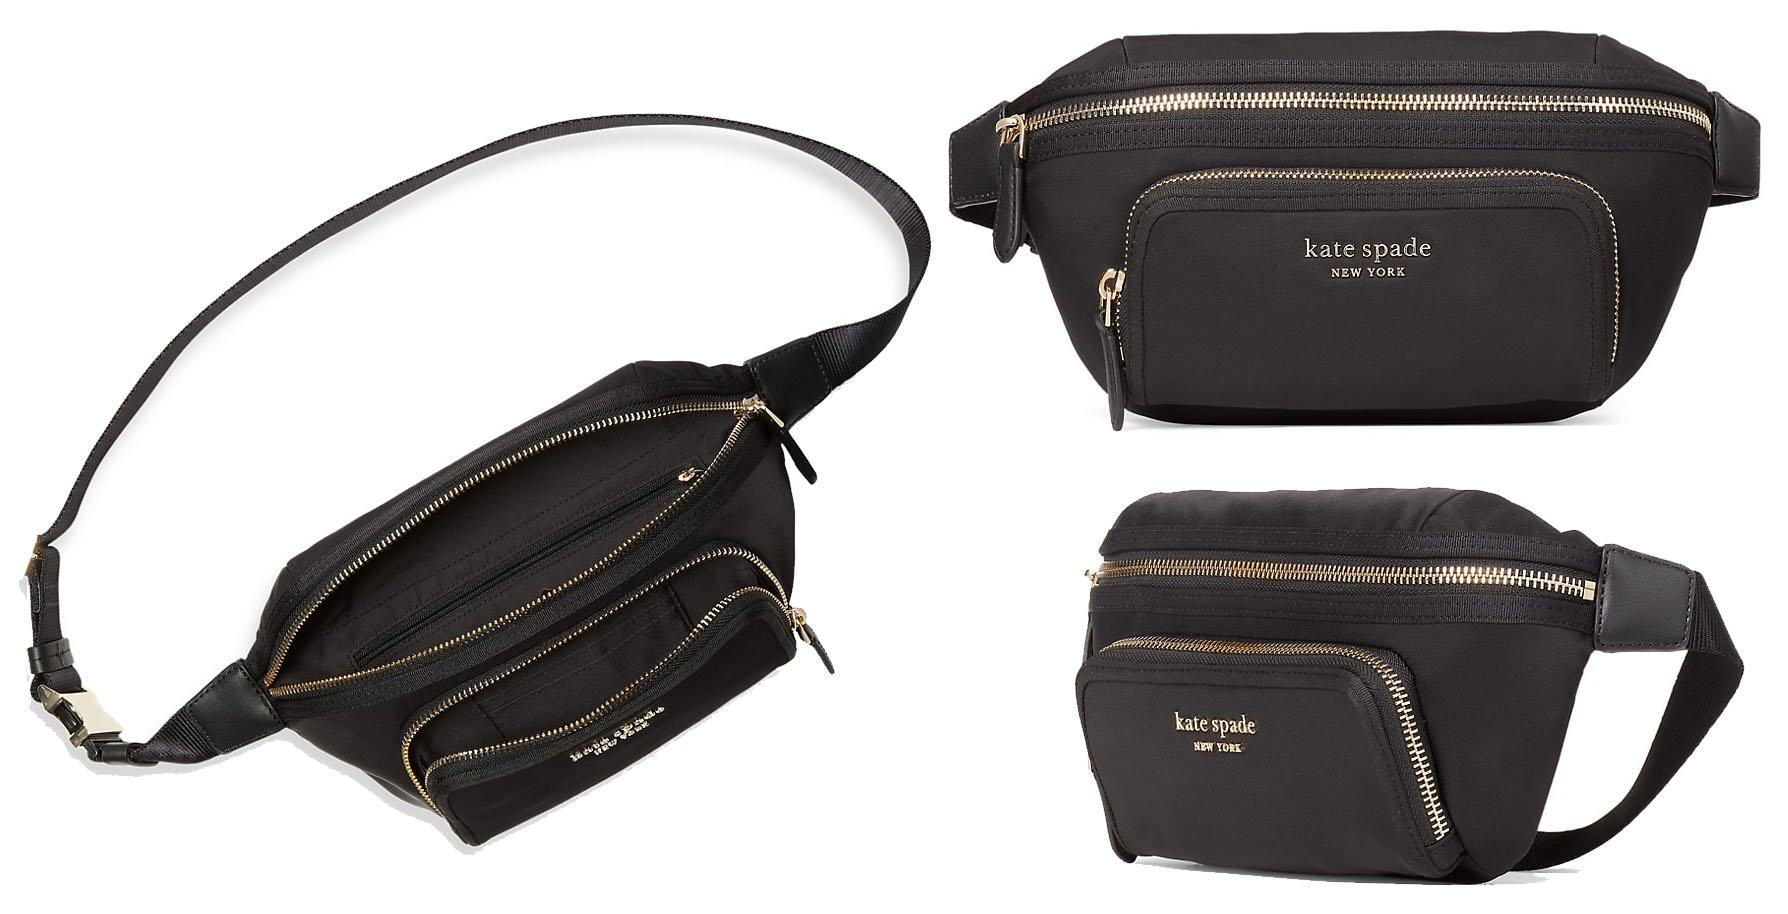 Made of durable nylon, this belt bag is highlighted with Kate Spade New York signature logo at the front zip pocket